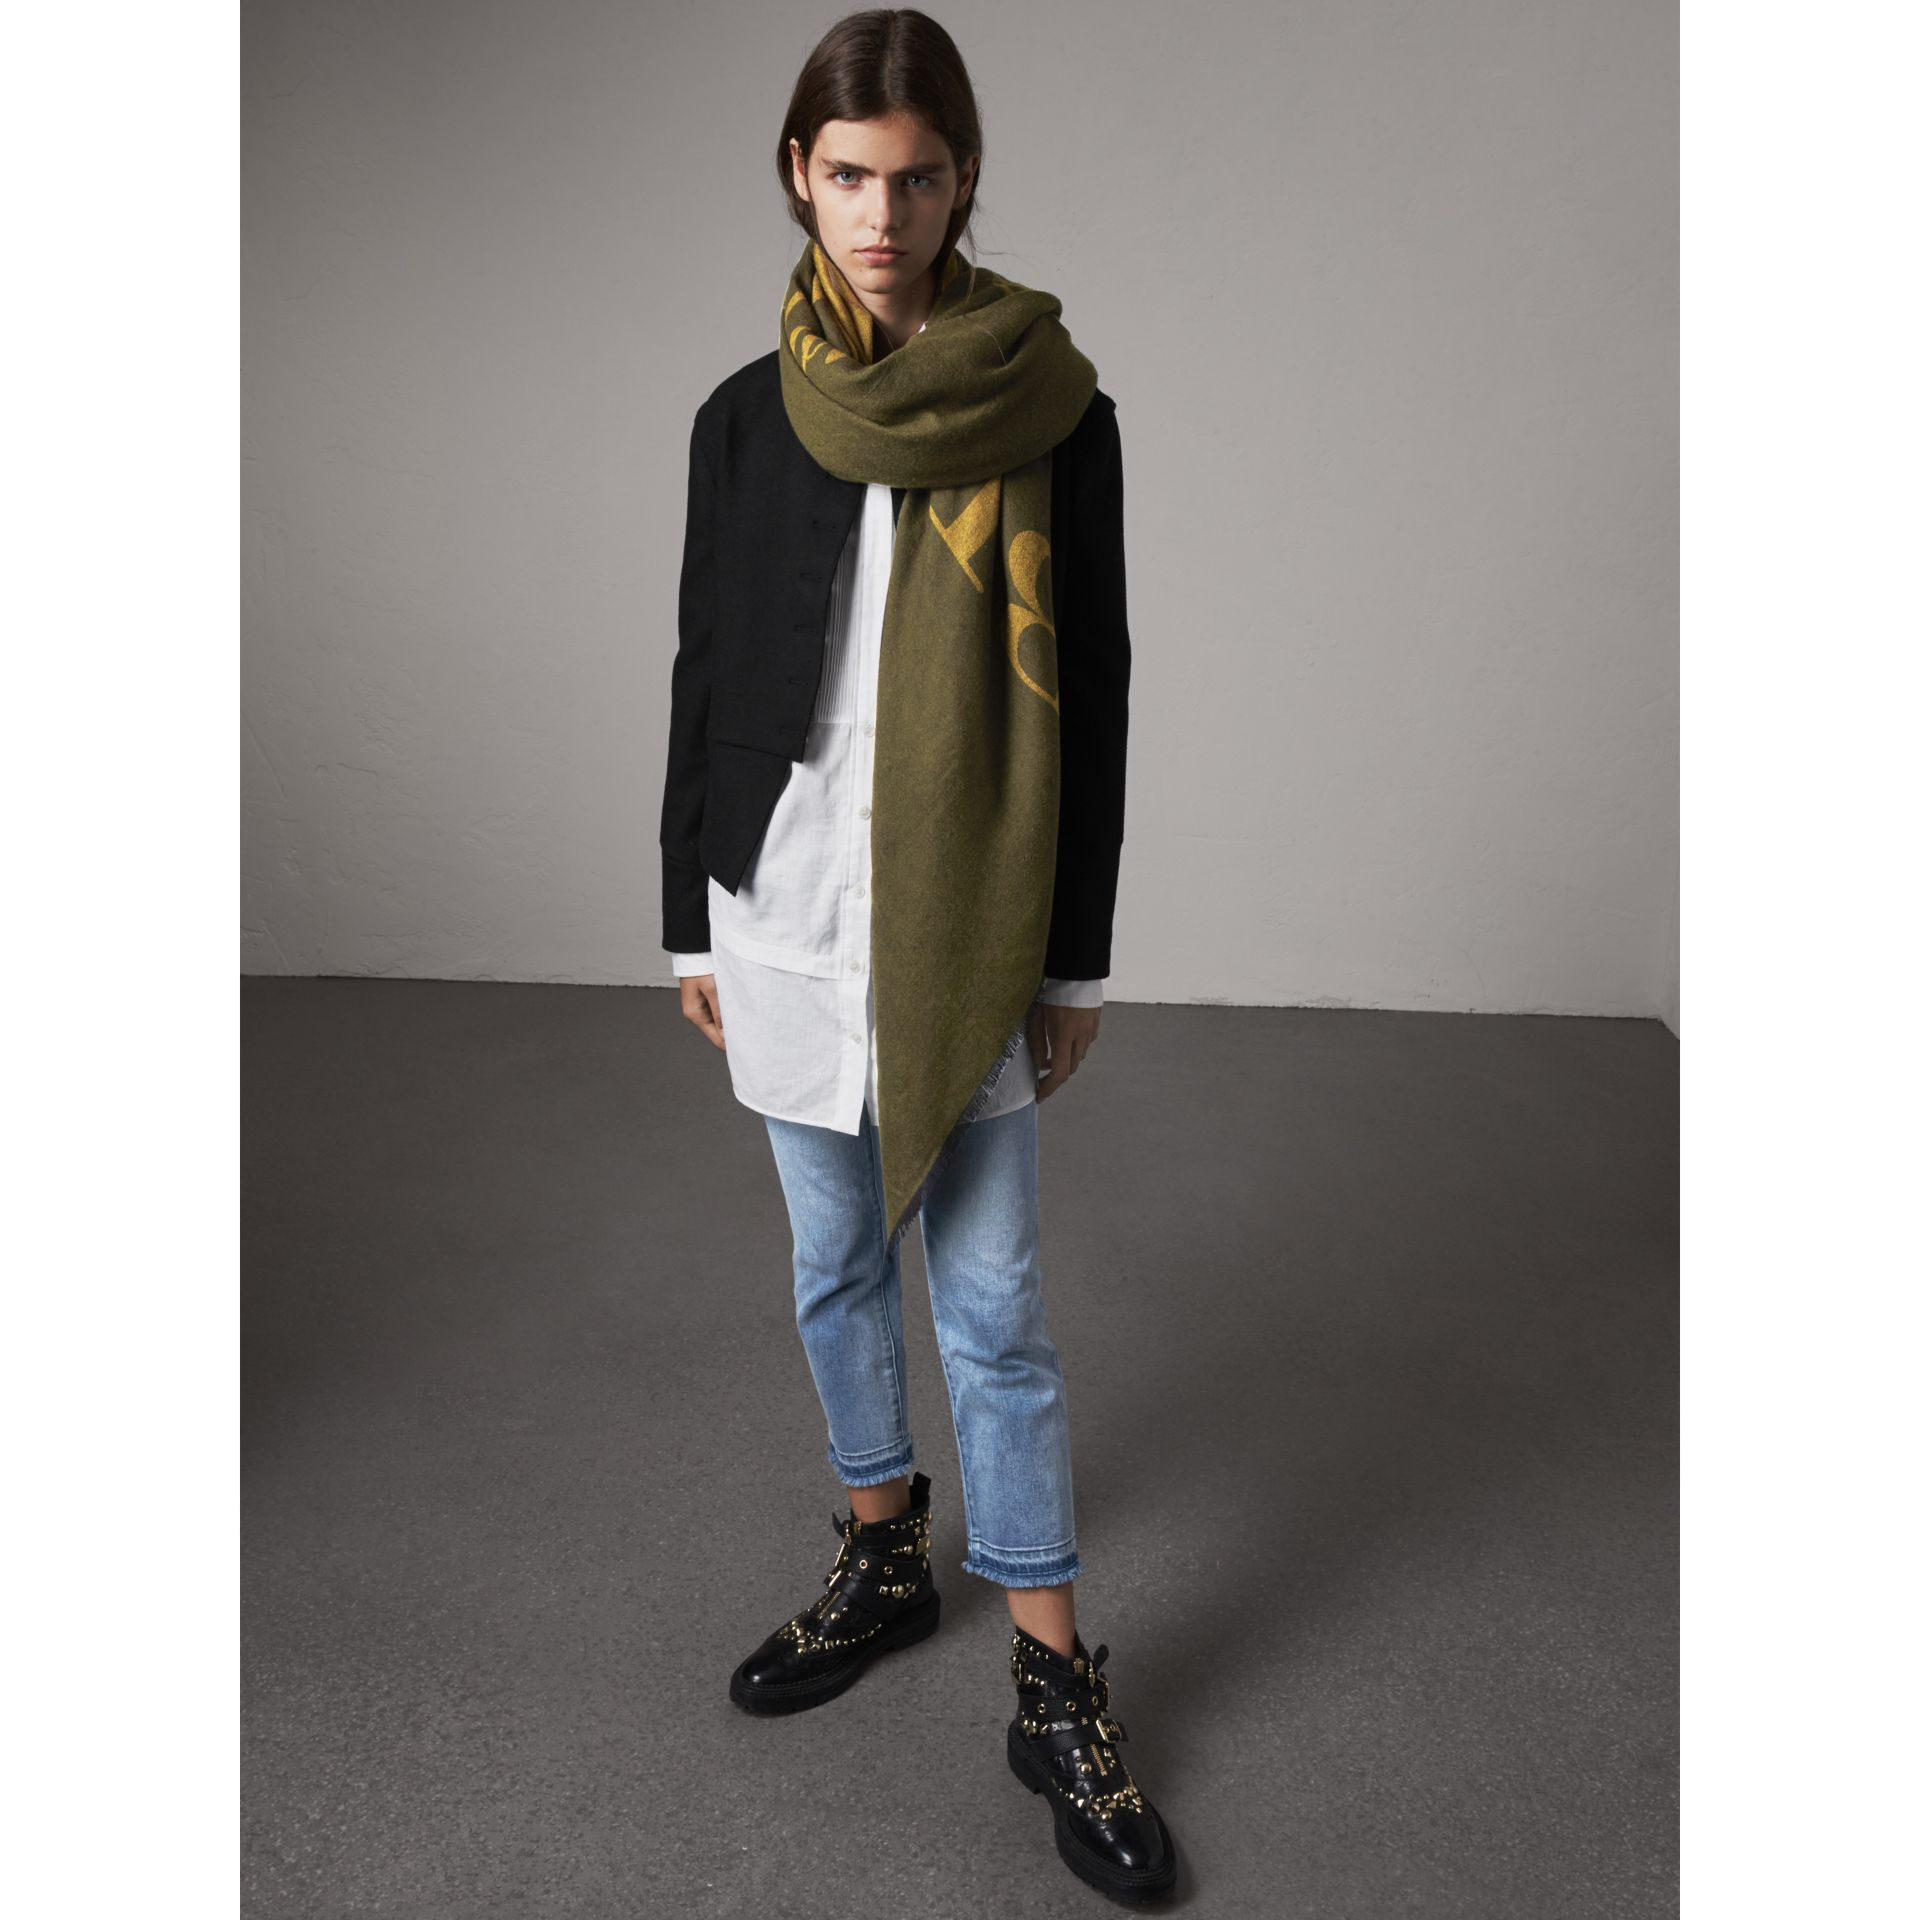 Graphic Print Motif Cashmere Wrap in Olive - Women | Burberry Australia - gallery image 3